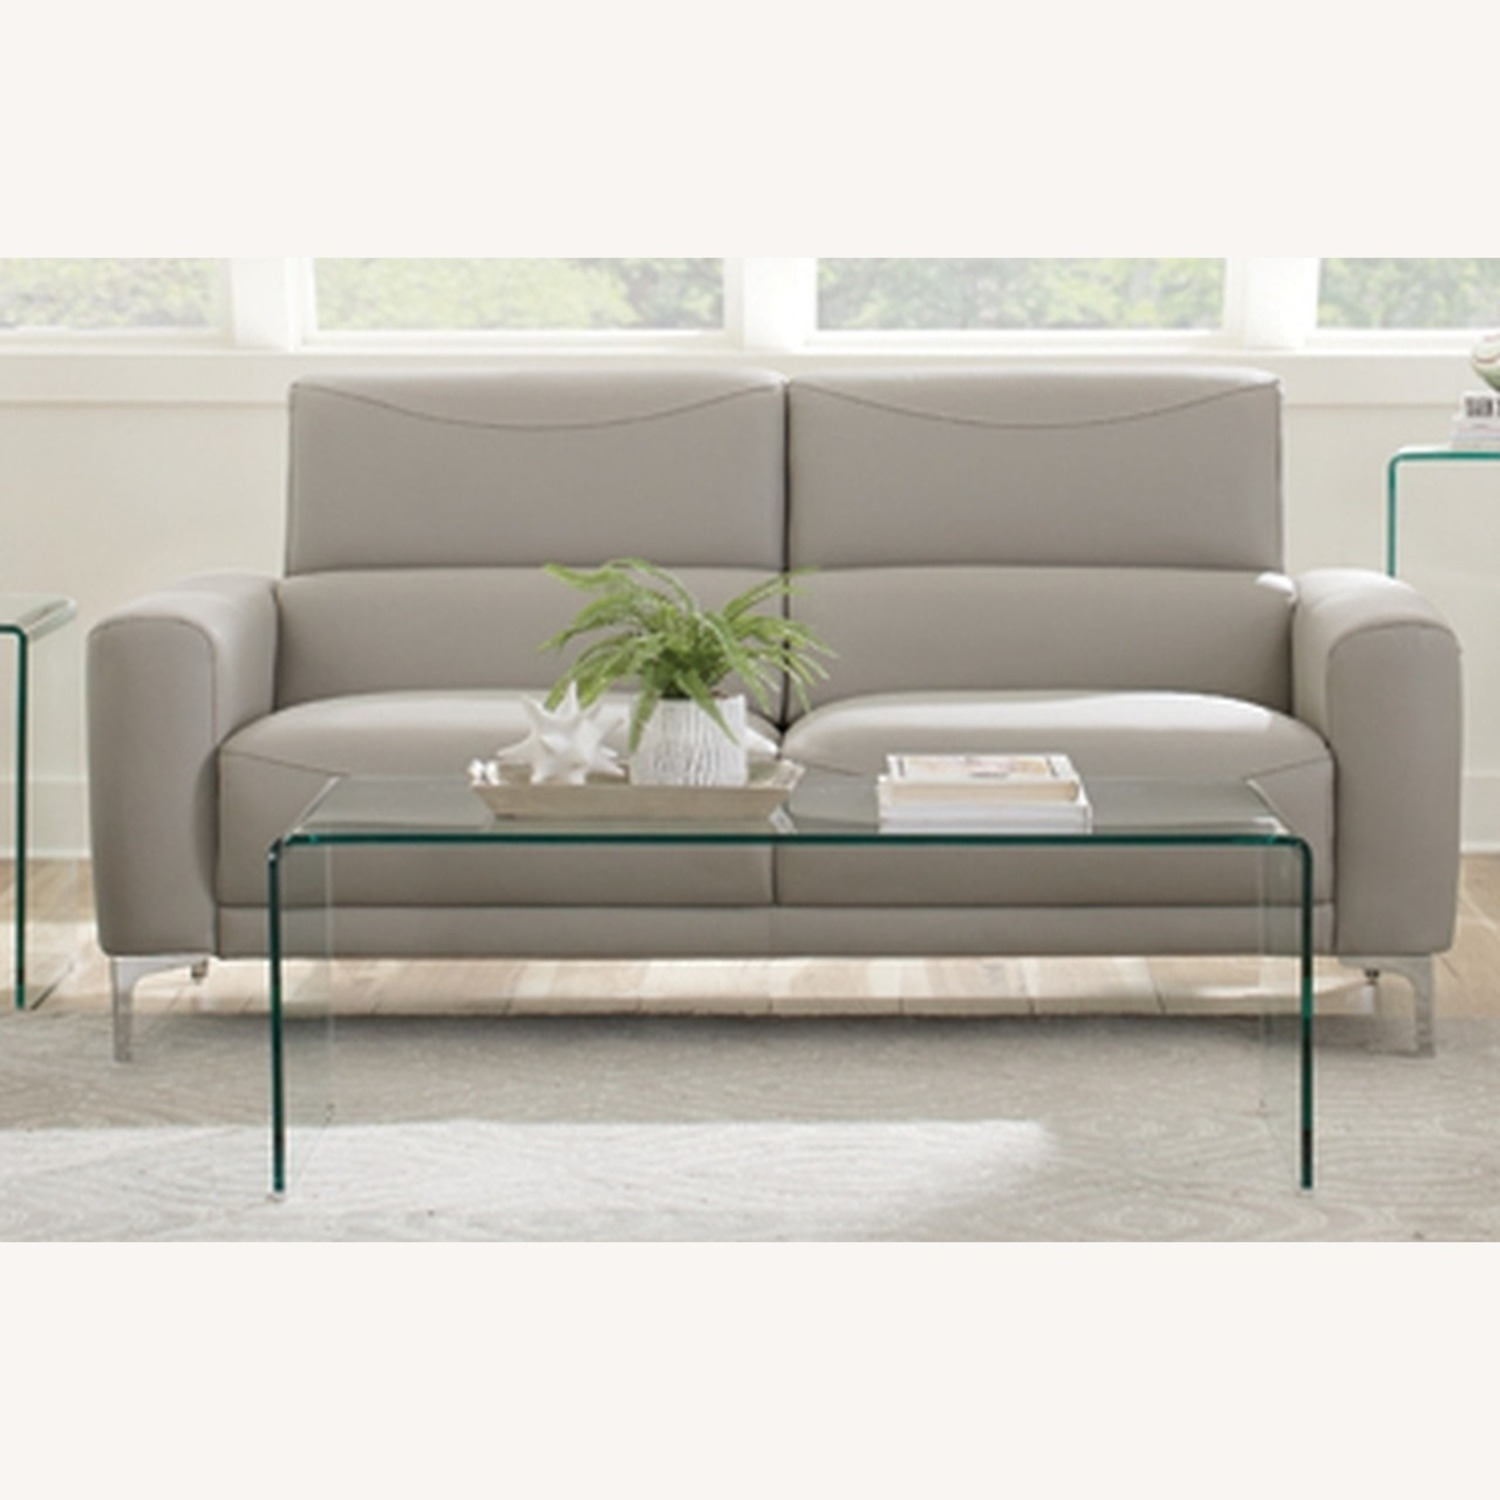 Sofa In Taupe Leatherette W/ Tall Metal Legs - image-0